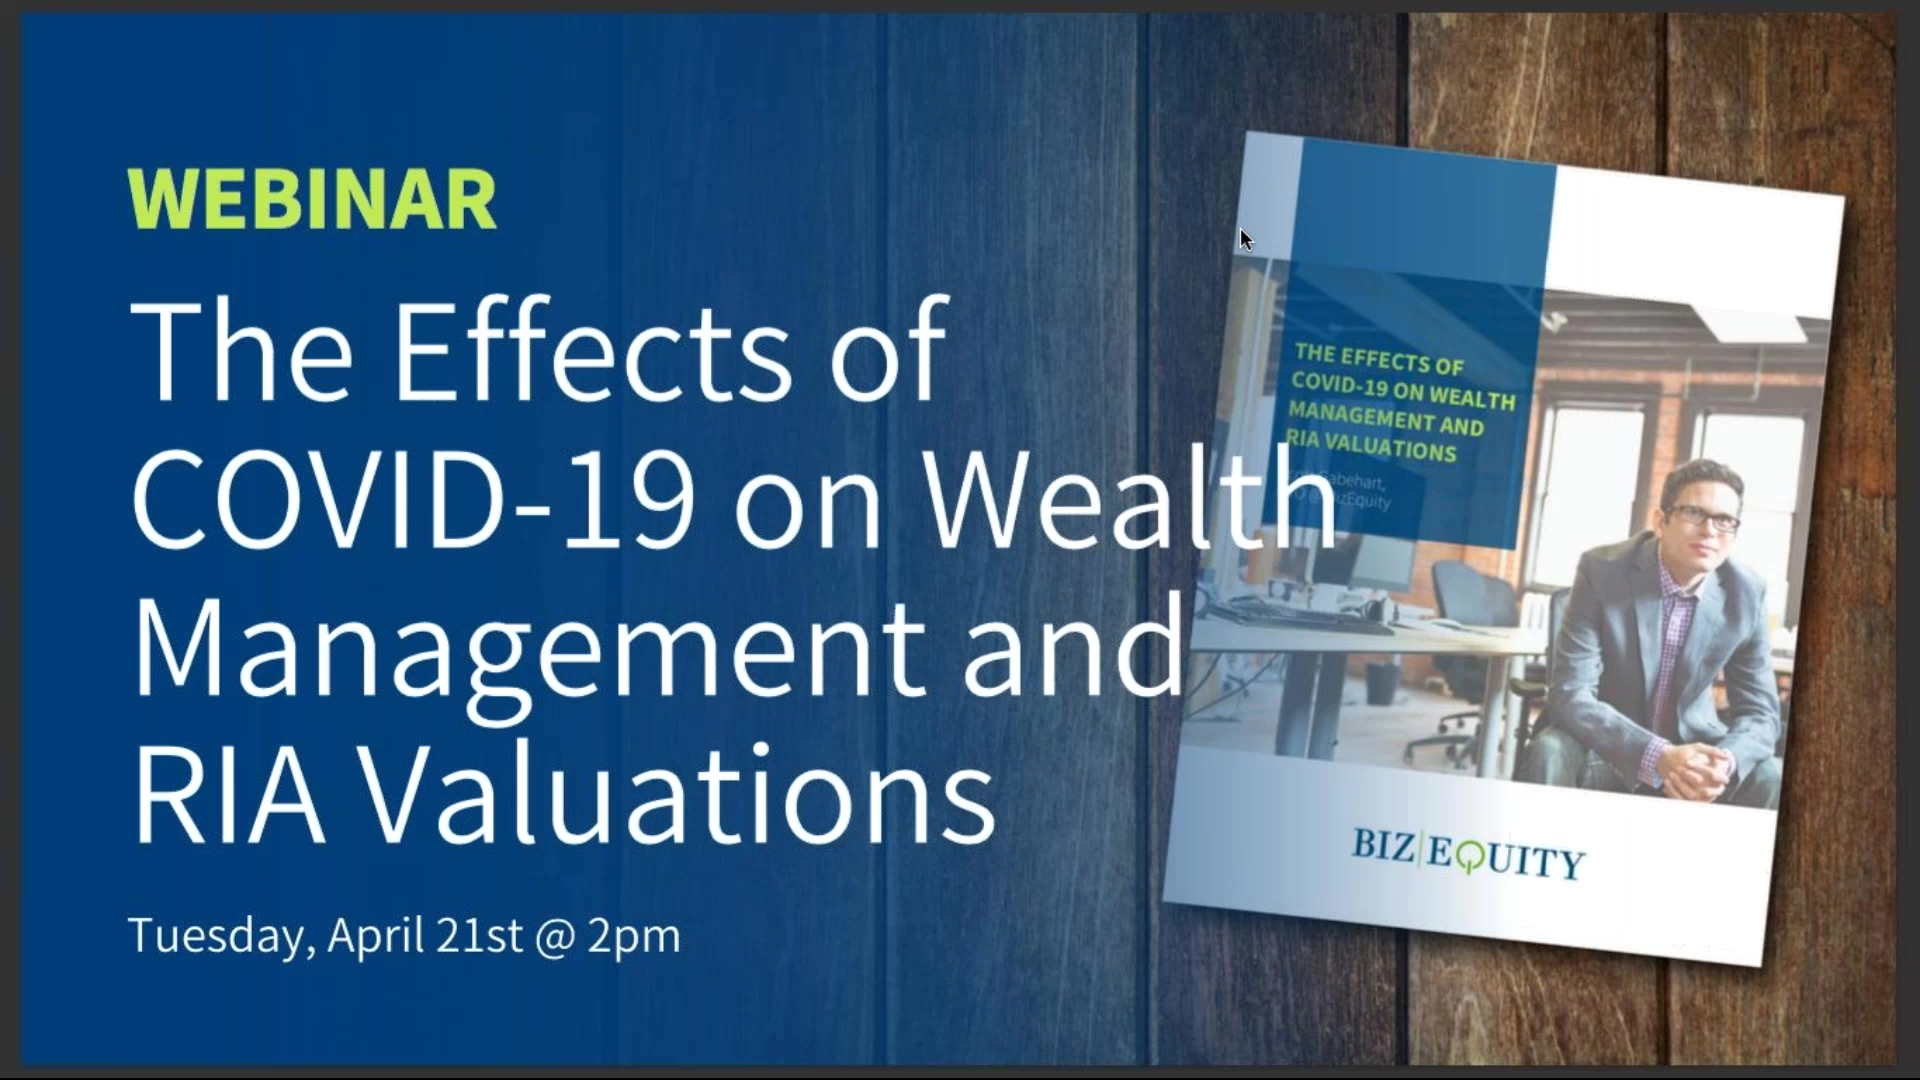 How COVID-19 is Affecting Wealth Management and RIA Valuations